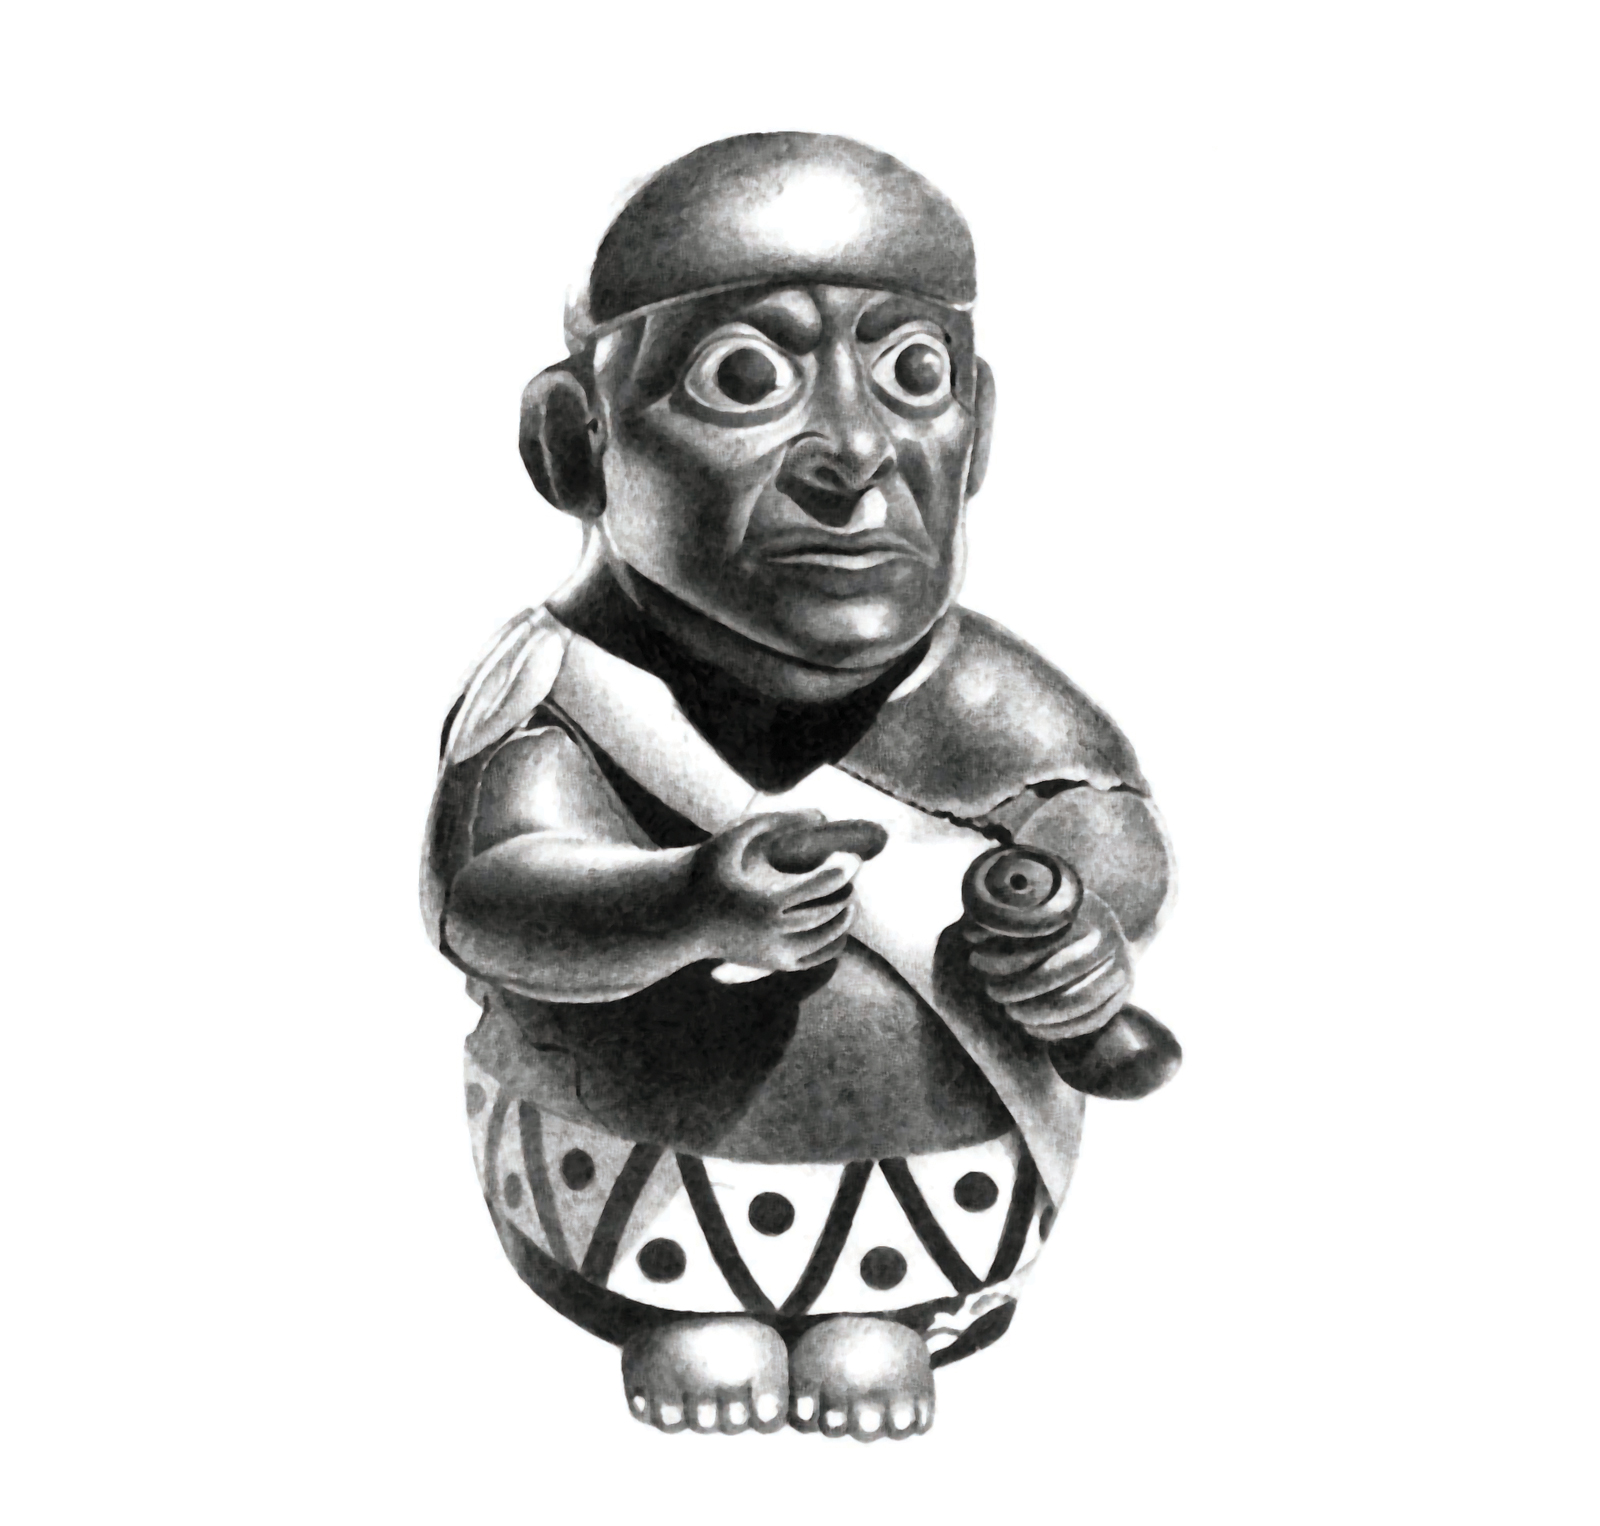 coca-chewer-figurine